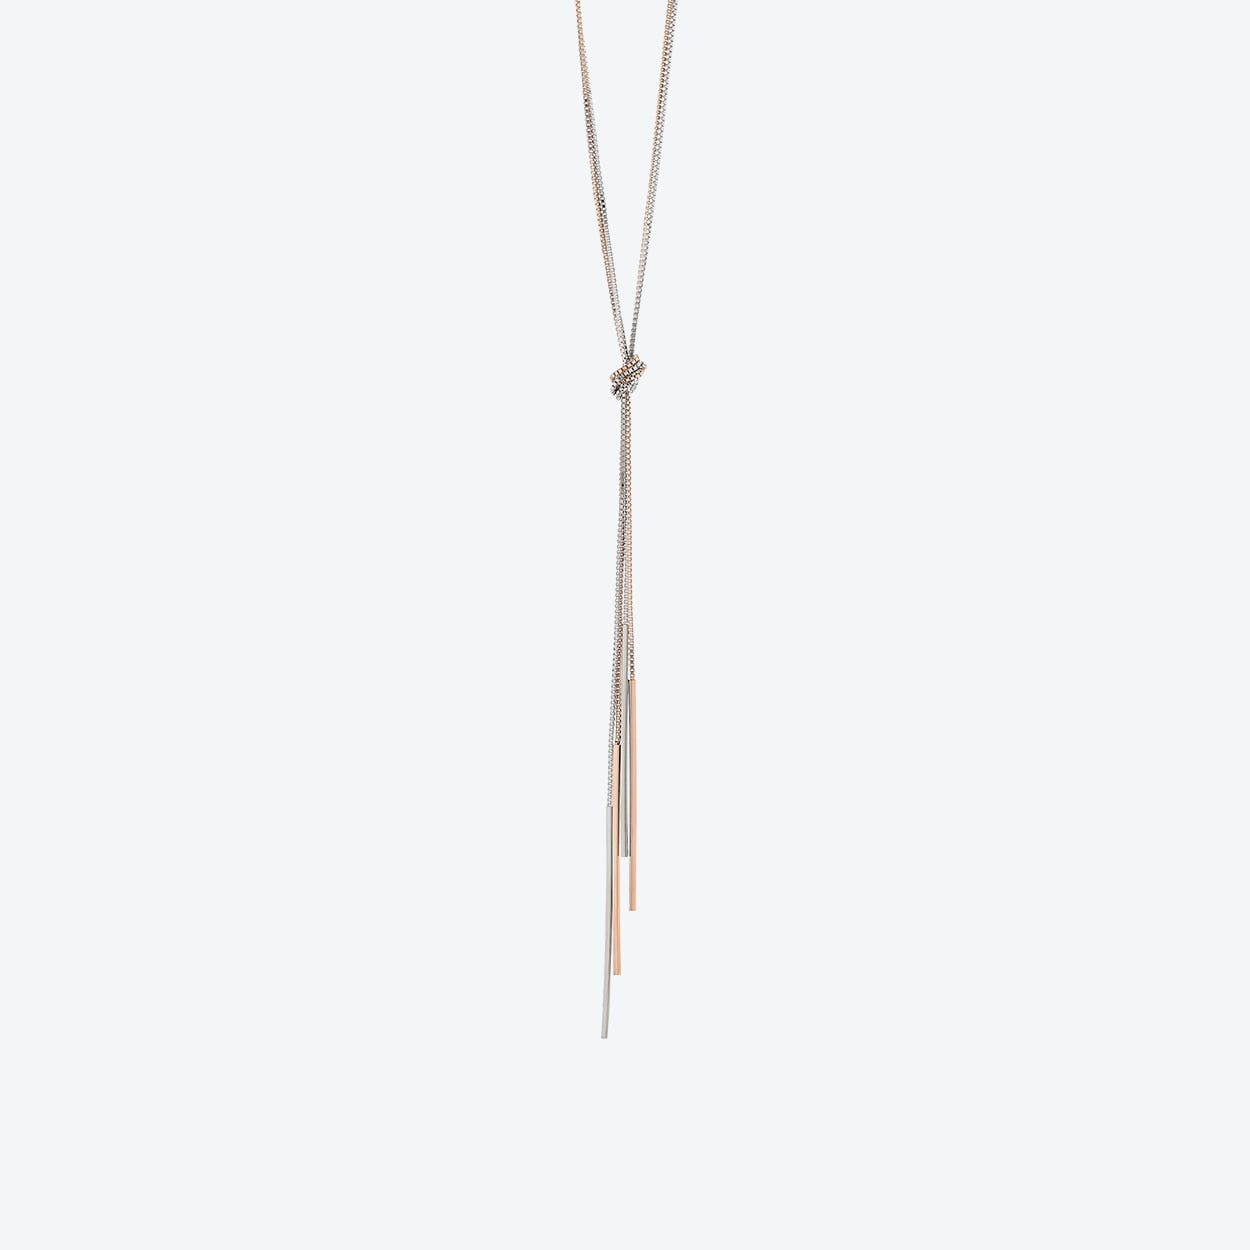 Silver/Rose Gold Mixed Plate Rope with Tassel